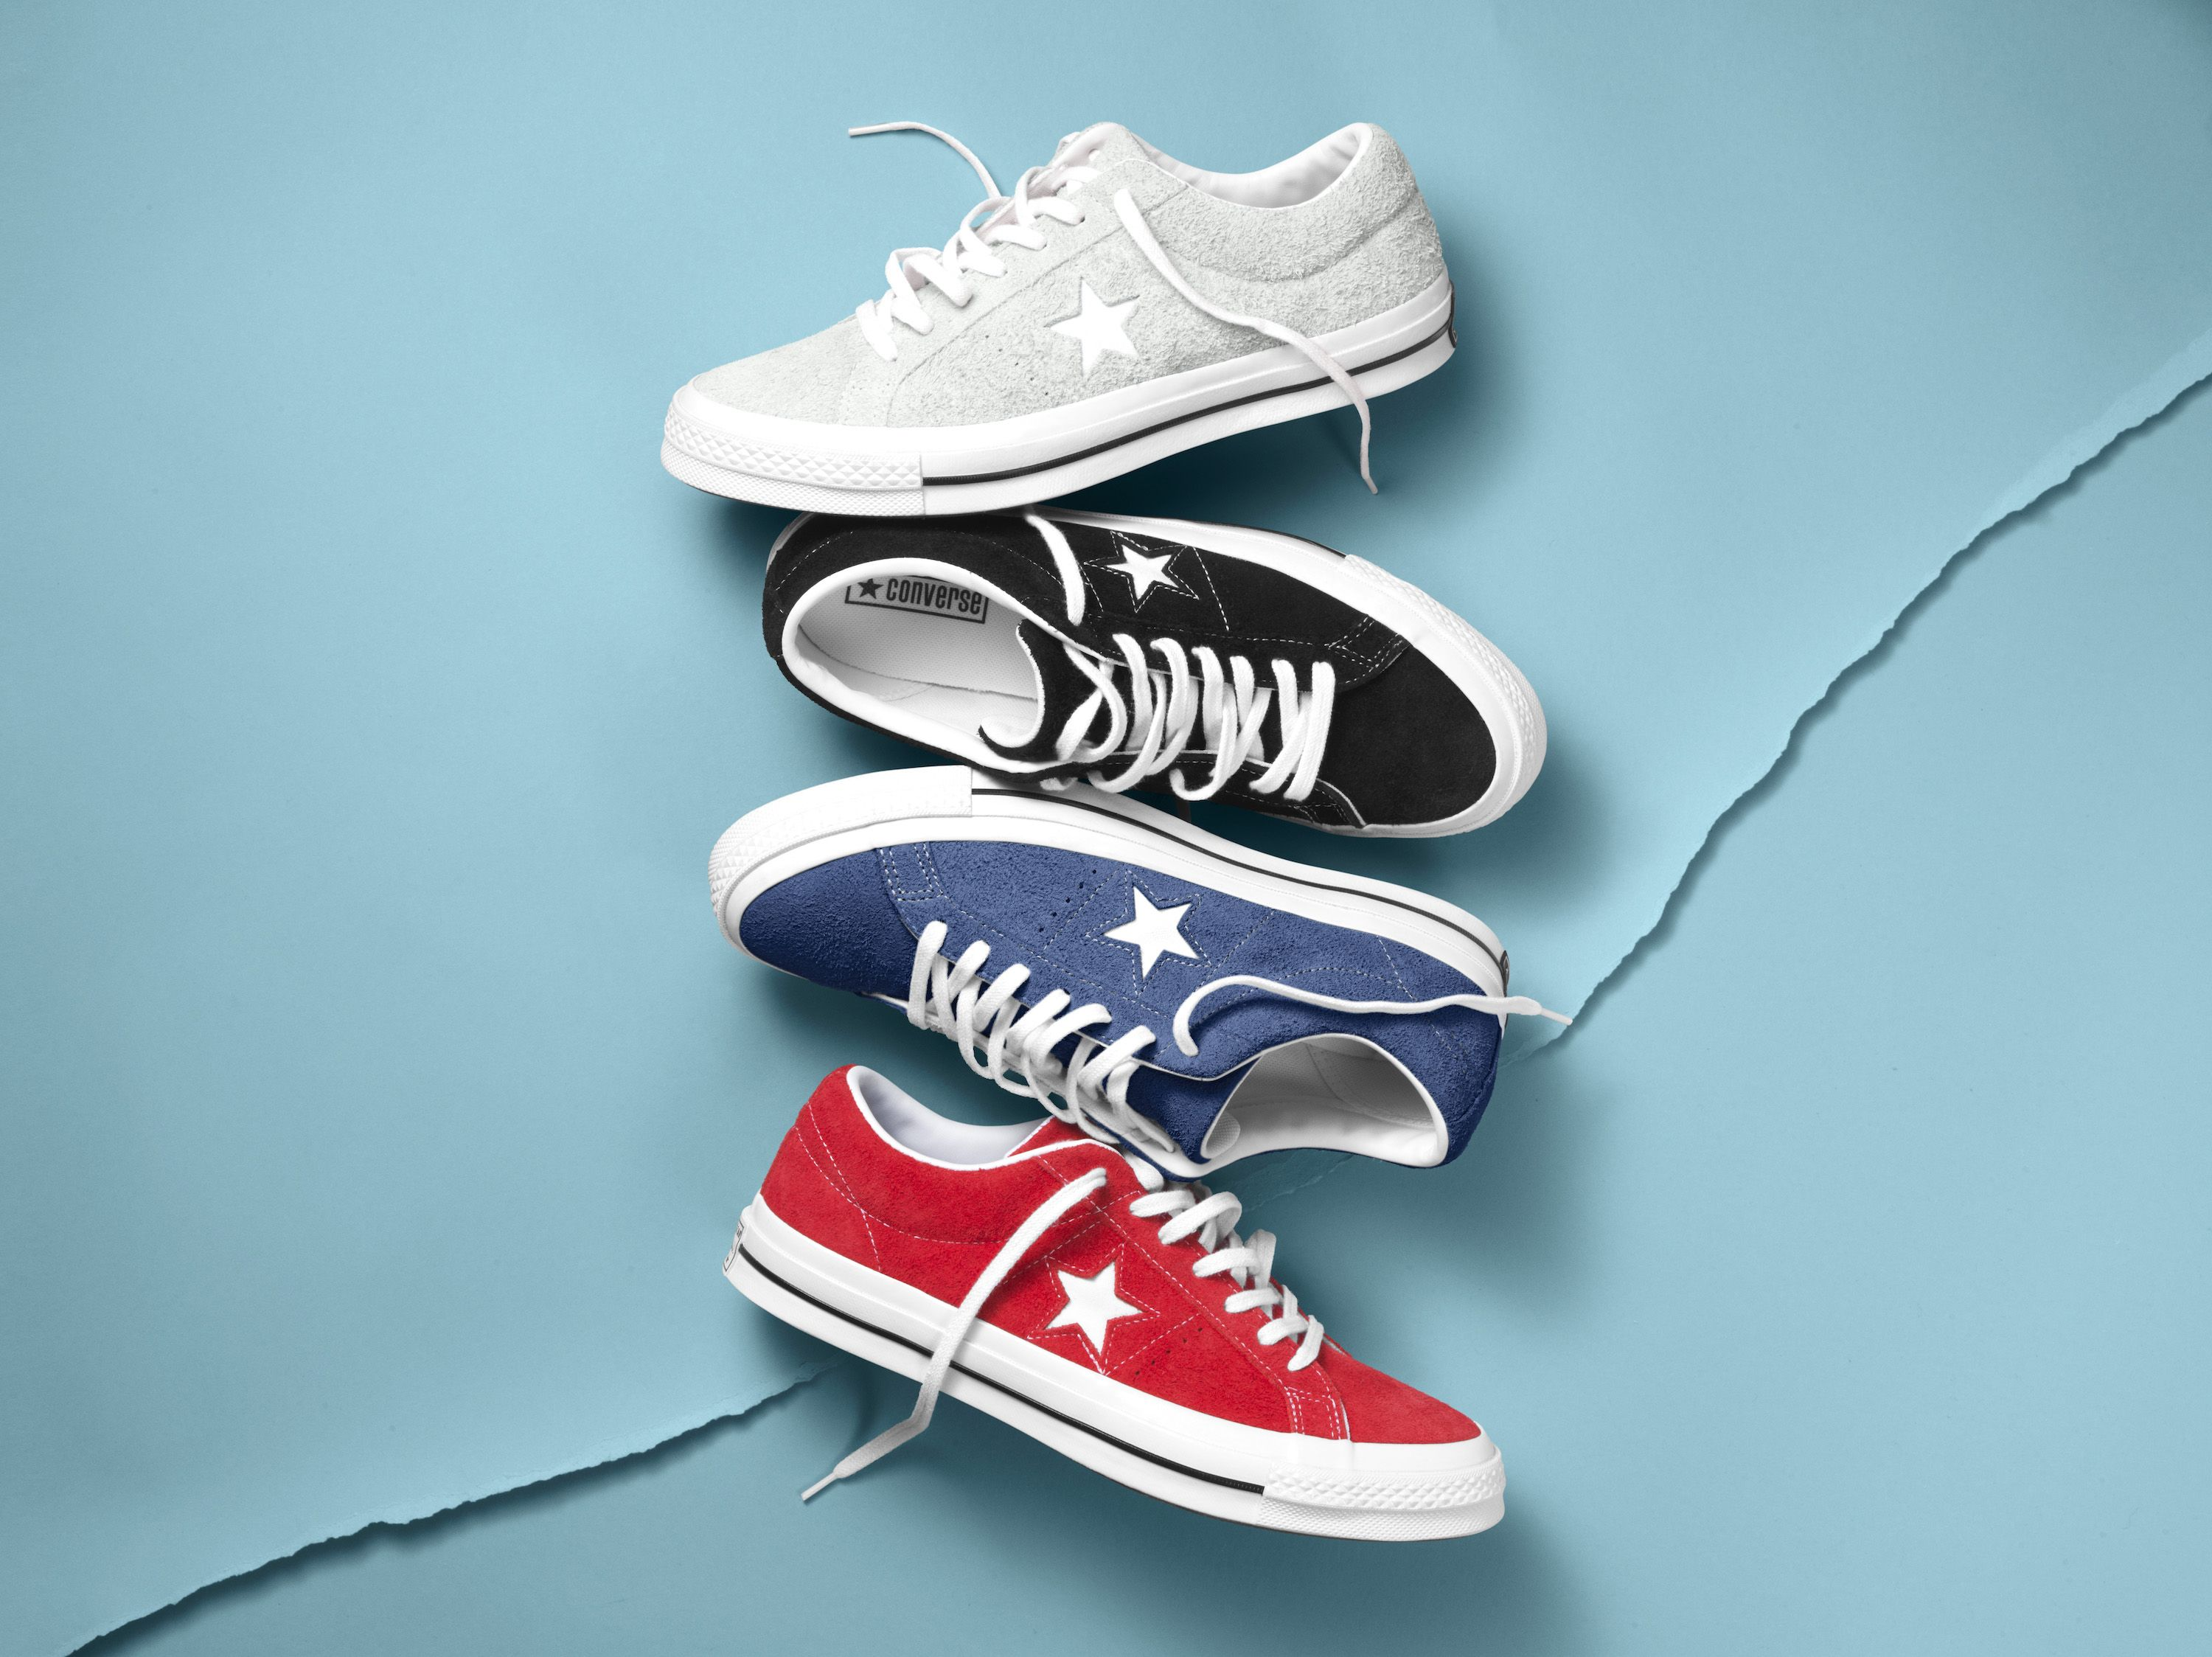 d3dddf7afab The Converse One Star Premium Suede.  RatedOneStar